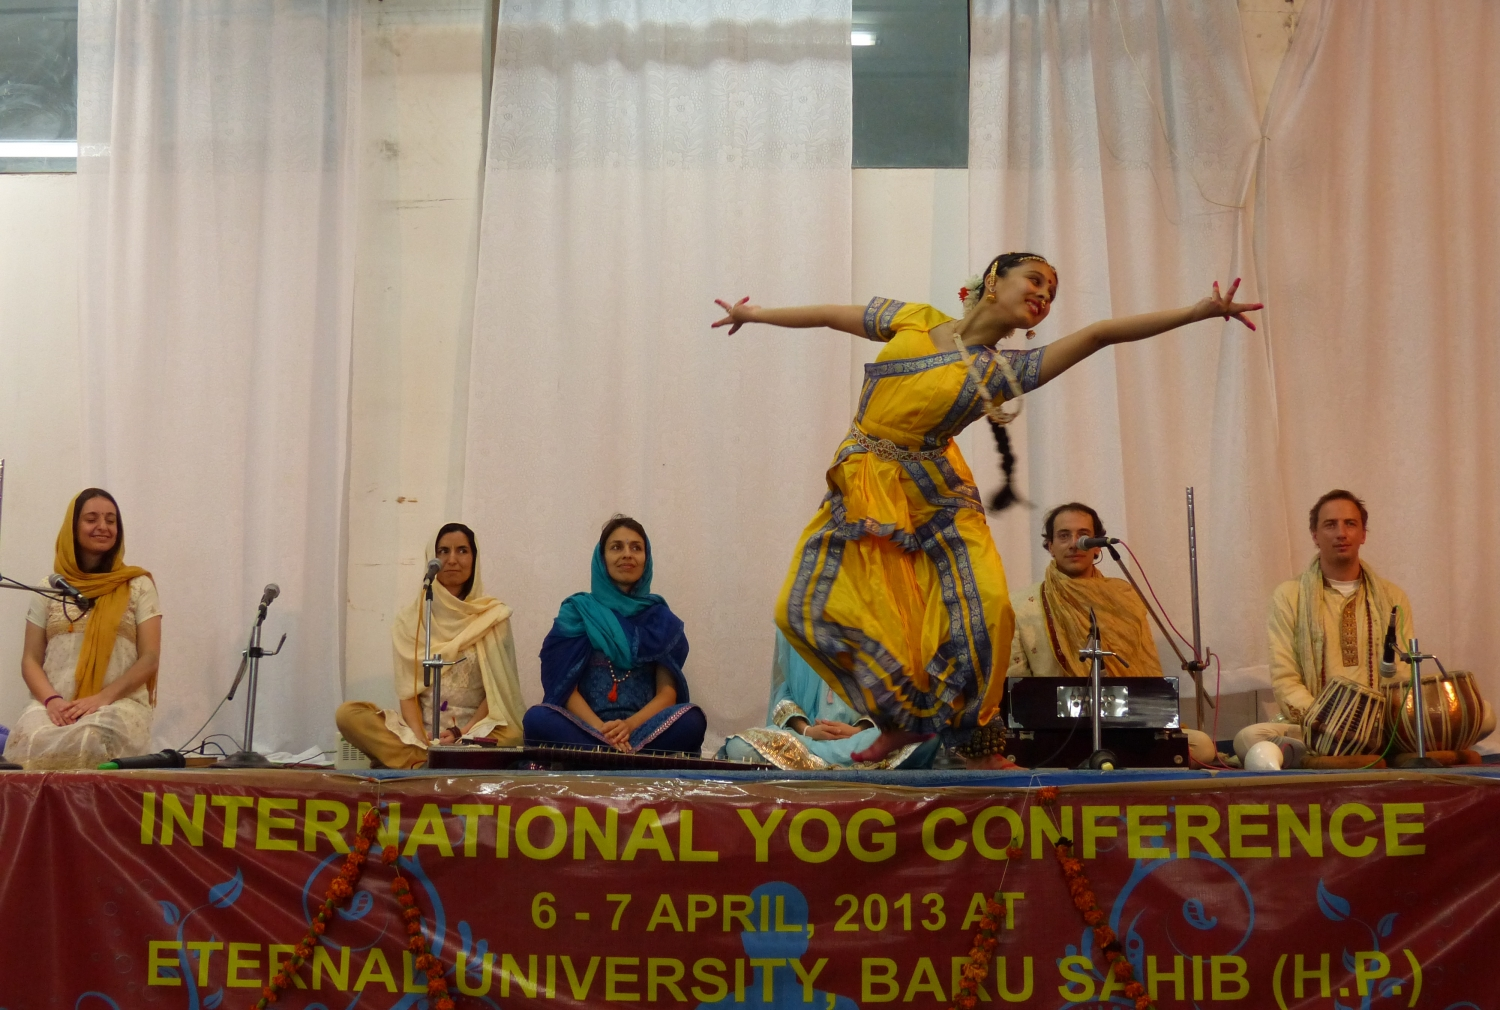 Presentation of Bháratanathyam by Shiva Rája - International Yoga Conference - India, Bahu Sahib, Eternal University, 2013